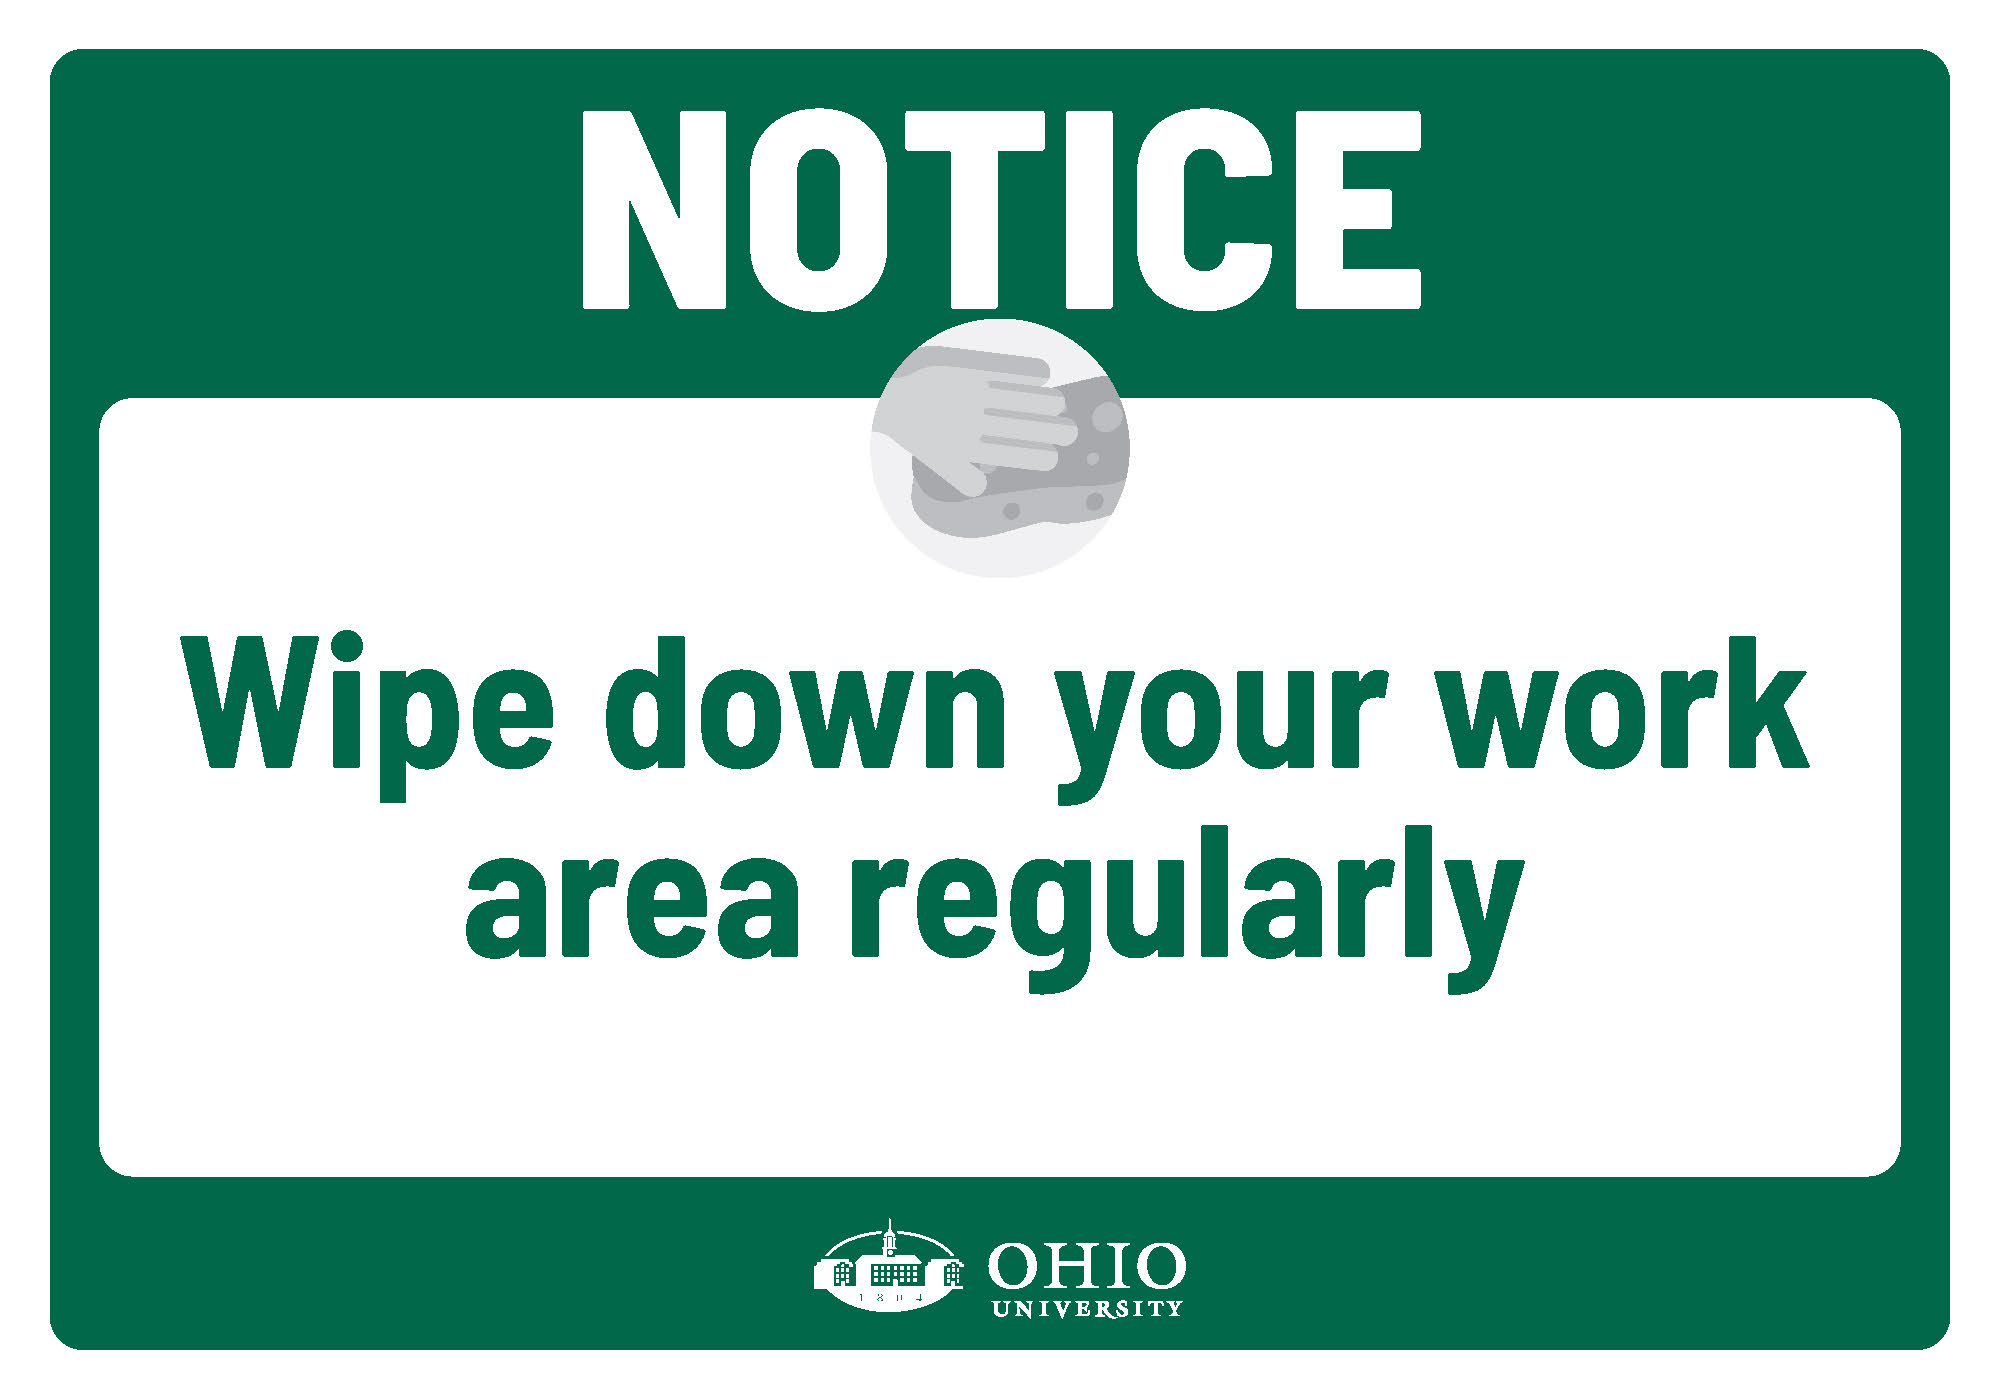 Sign that says: Notice. Wipe down your work area regularly